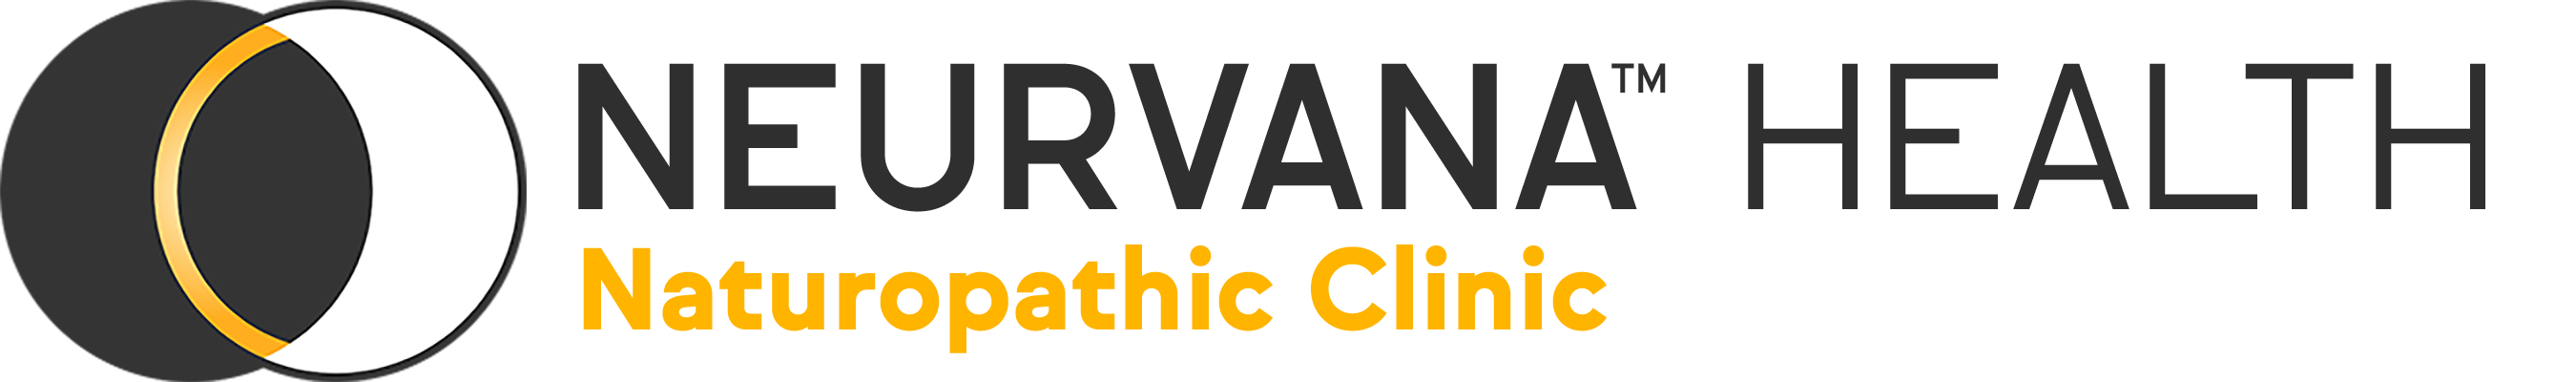 Neurvana Health Naturopathic Clinic Takes A Whole-Life Naturopathic Approach To Treat Chronic Health Problems